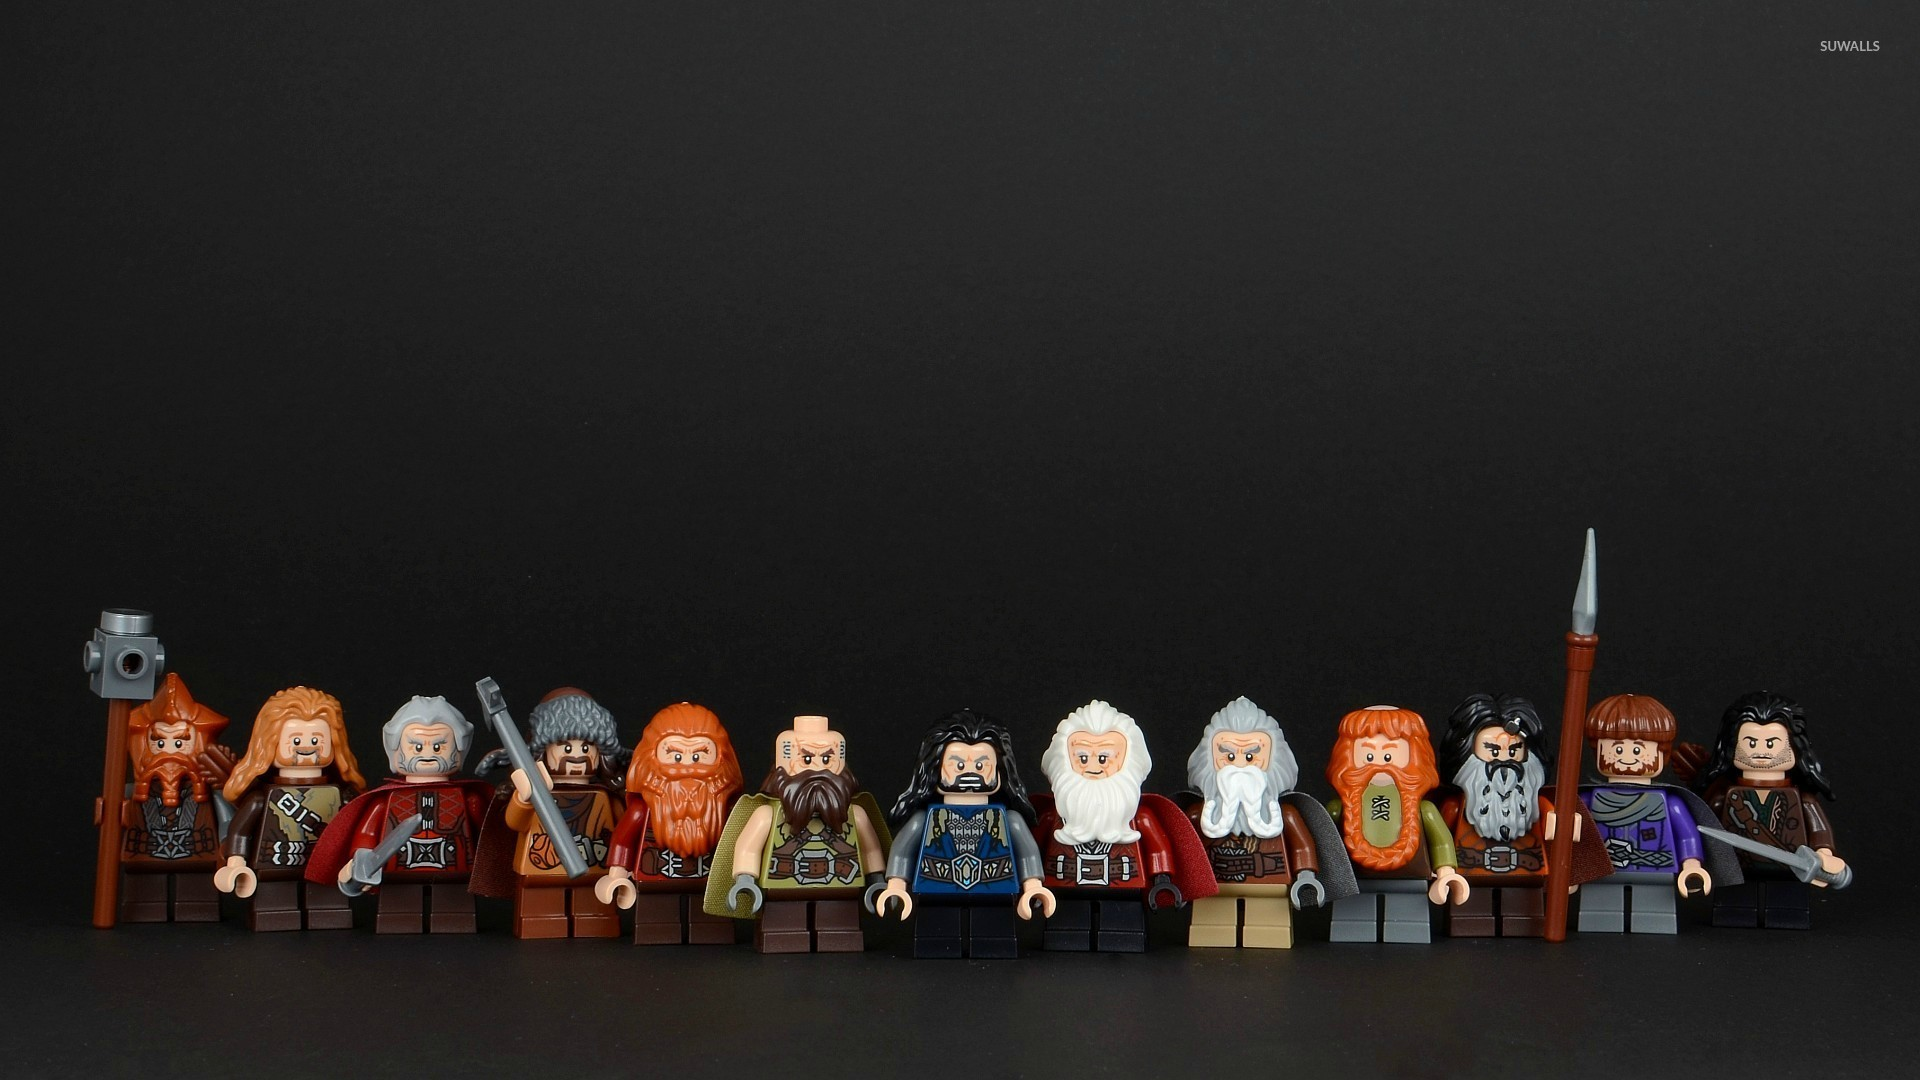 Lego The Hobbit wallpaper   Photography wallpapers   41709 1680x1050